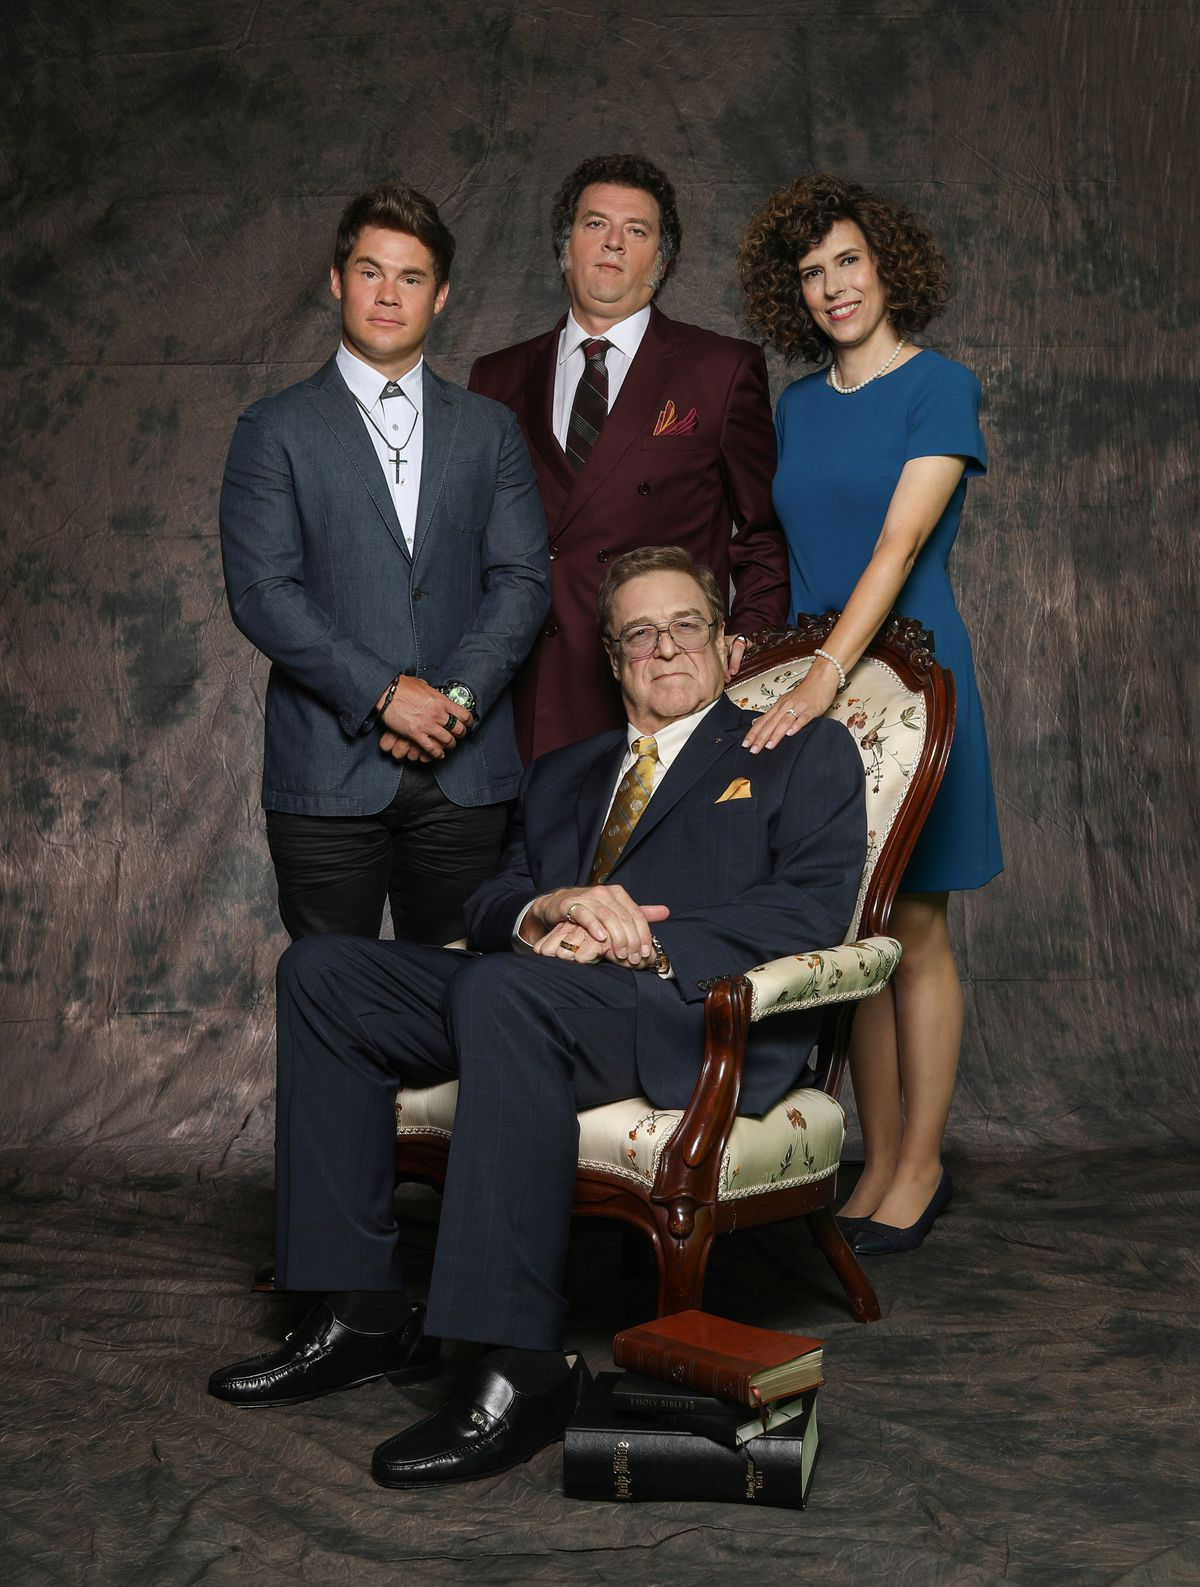 Kelvin (Adam Devine), Jesse (Danny McBride), and Judy (Edi Patterson) stand behind the seated Eli (John Goodman) in a family portrait in The Righteous Gemstones